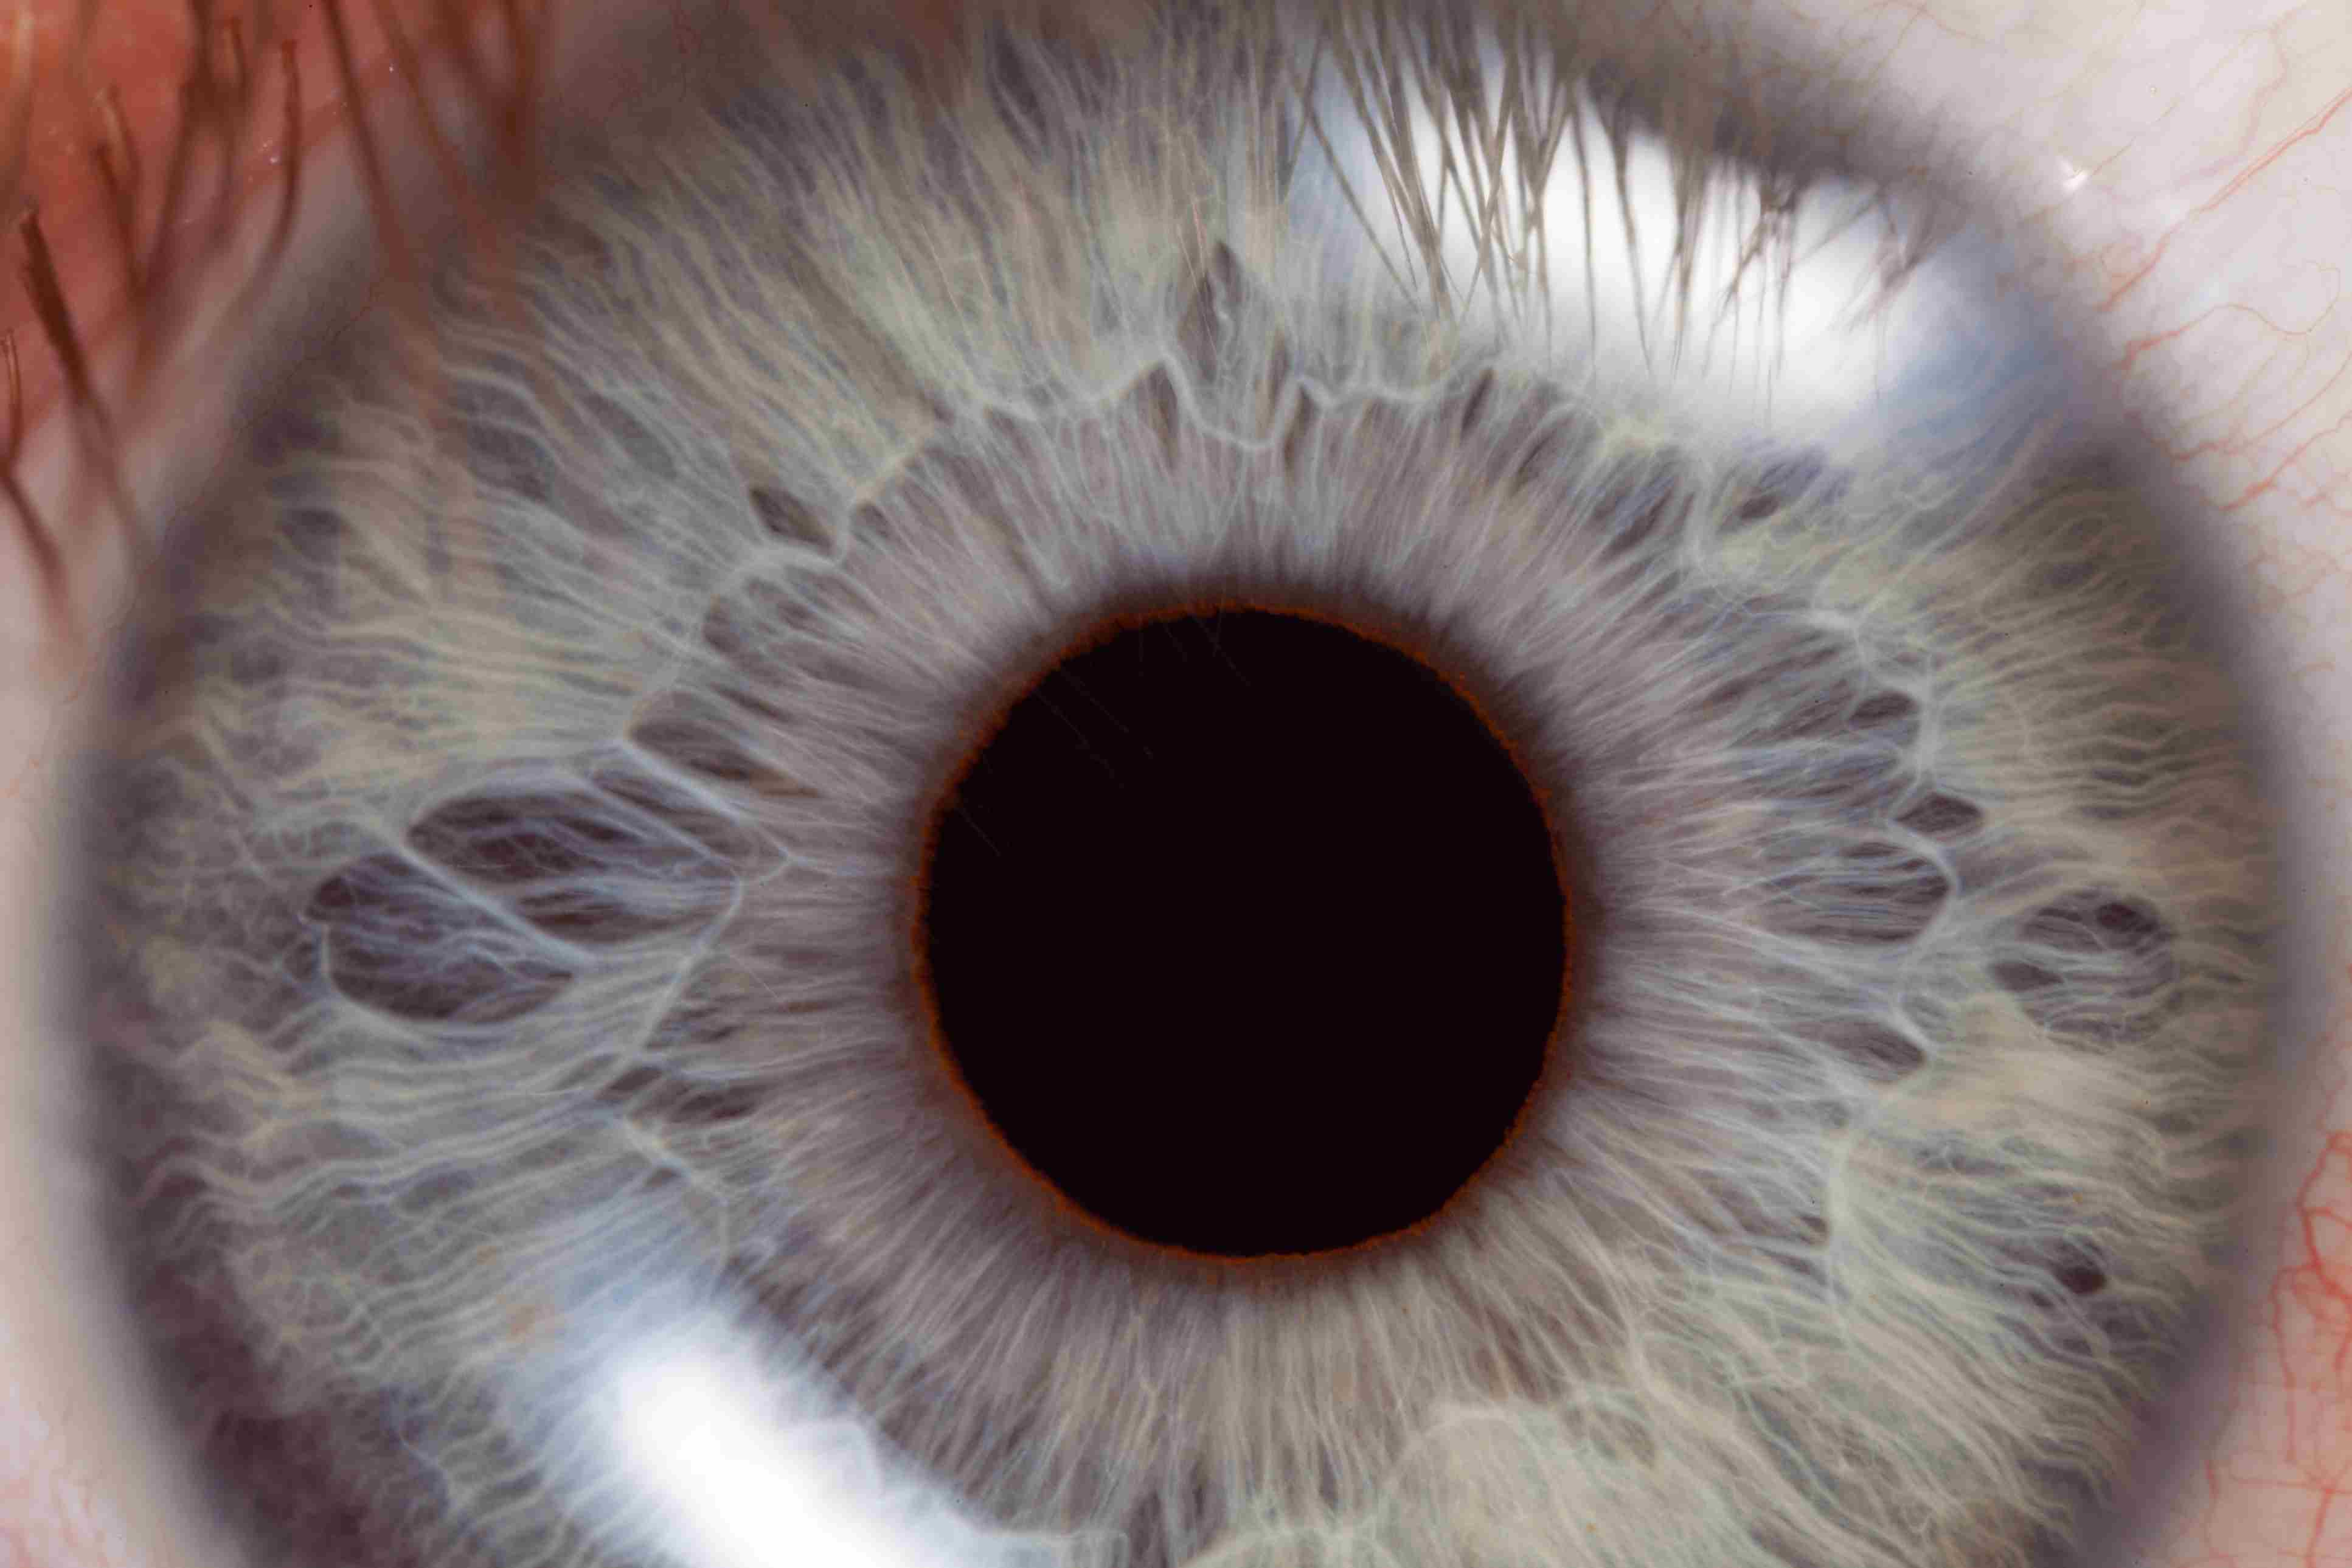 048558efb6b Light Response Pupil Test. close up of the eye